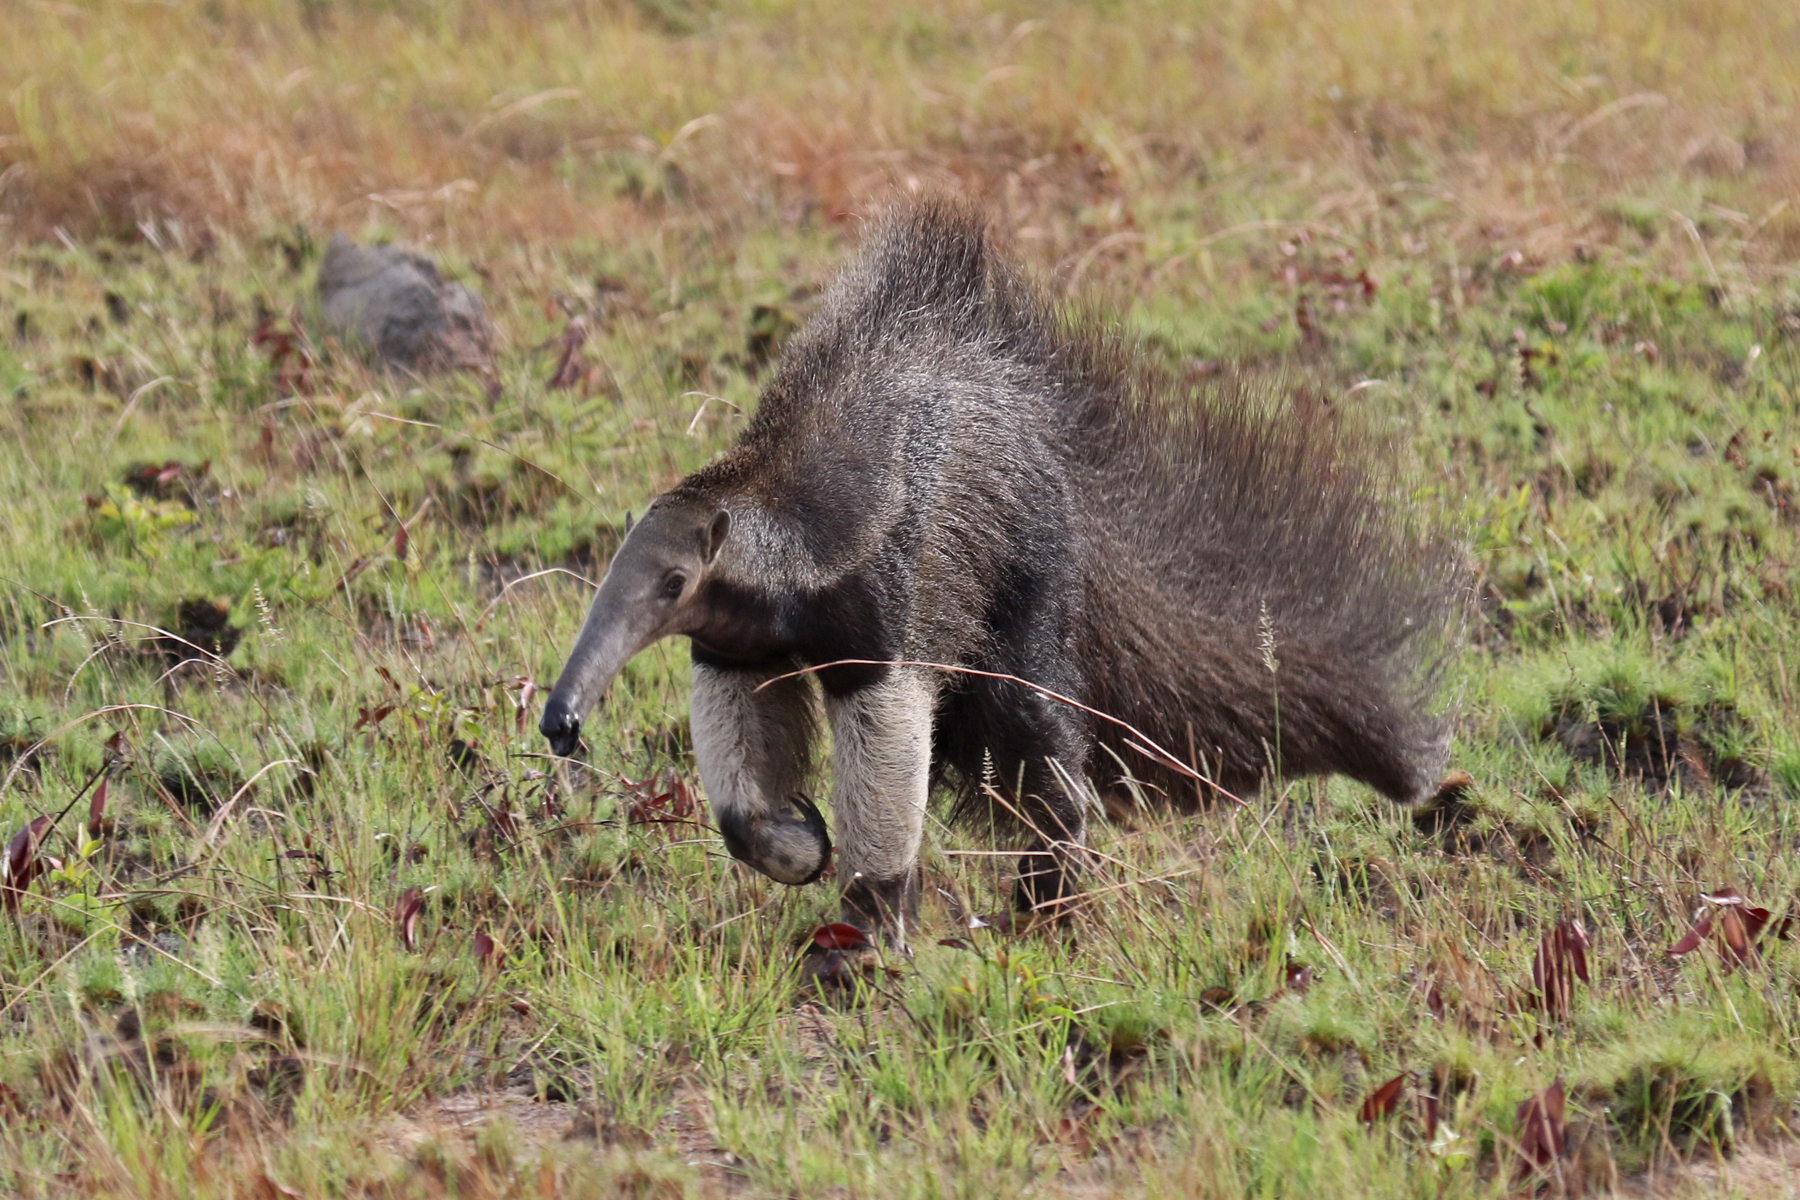 Guyana travel offers great opportunities to see Giant Anteater